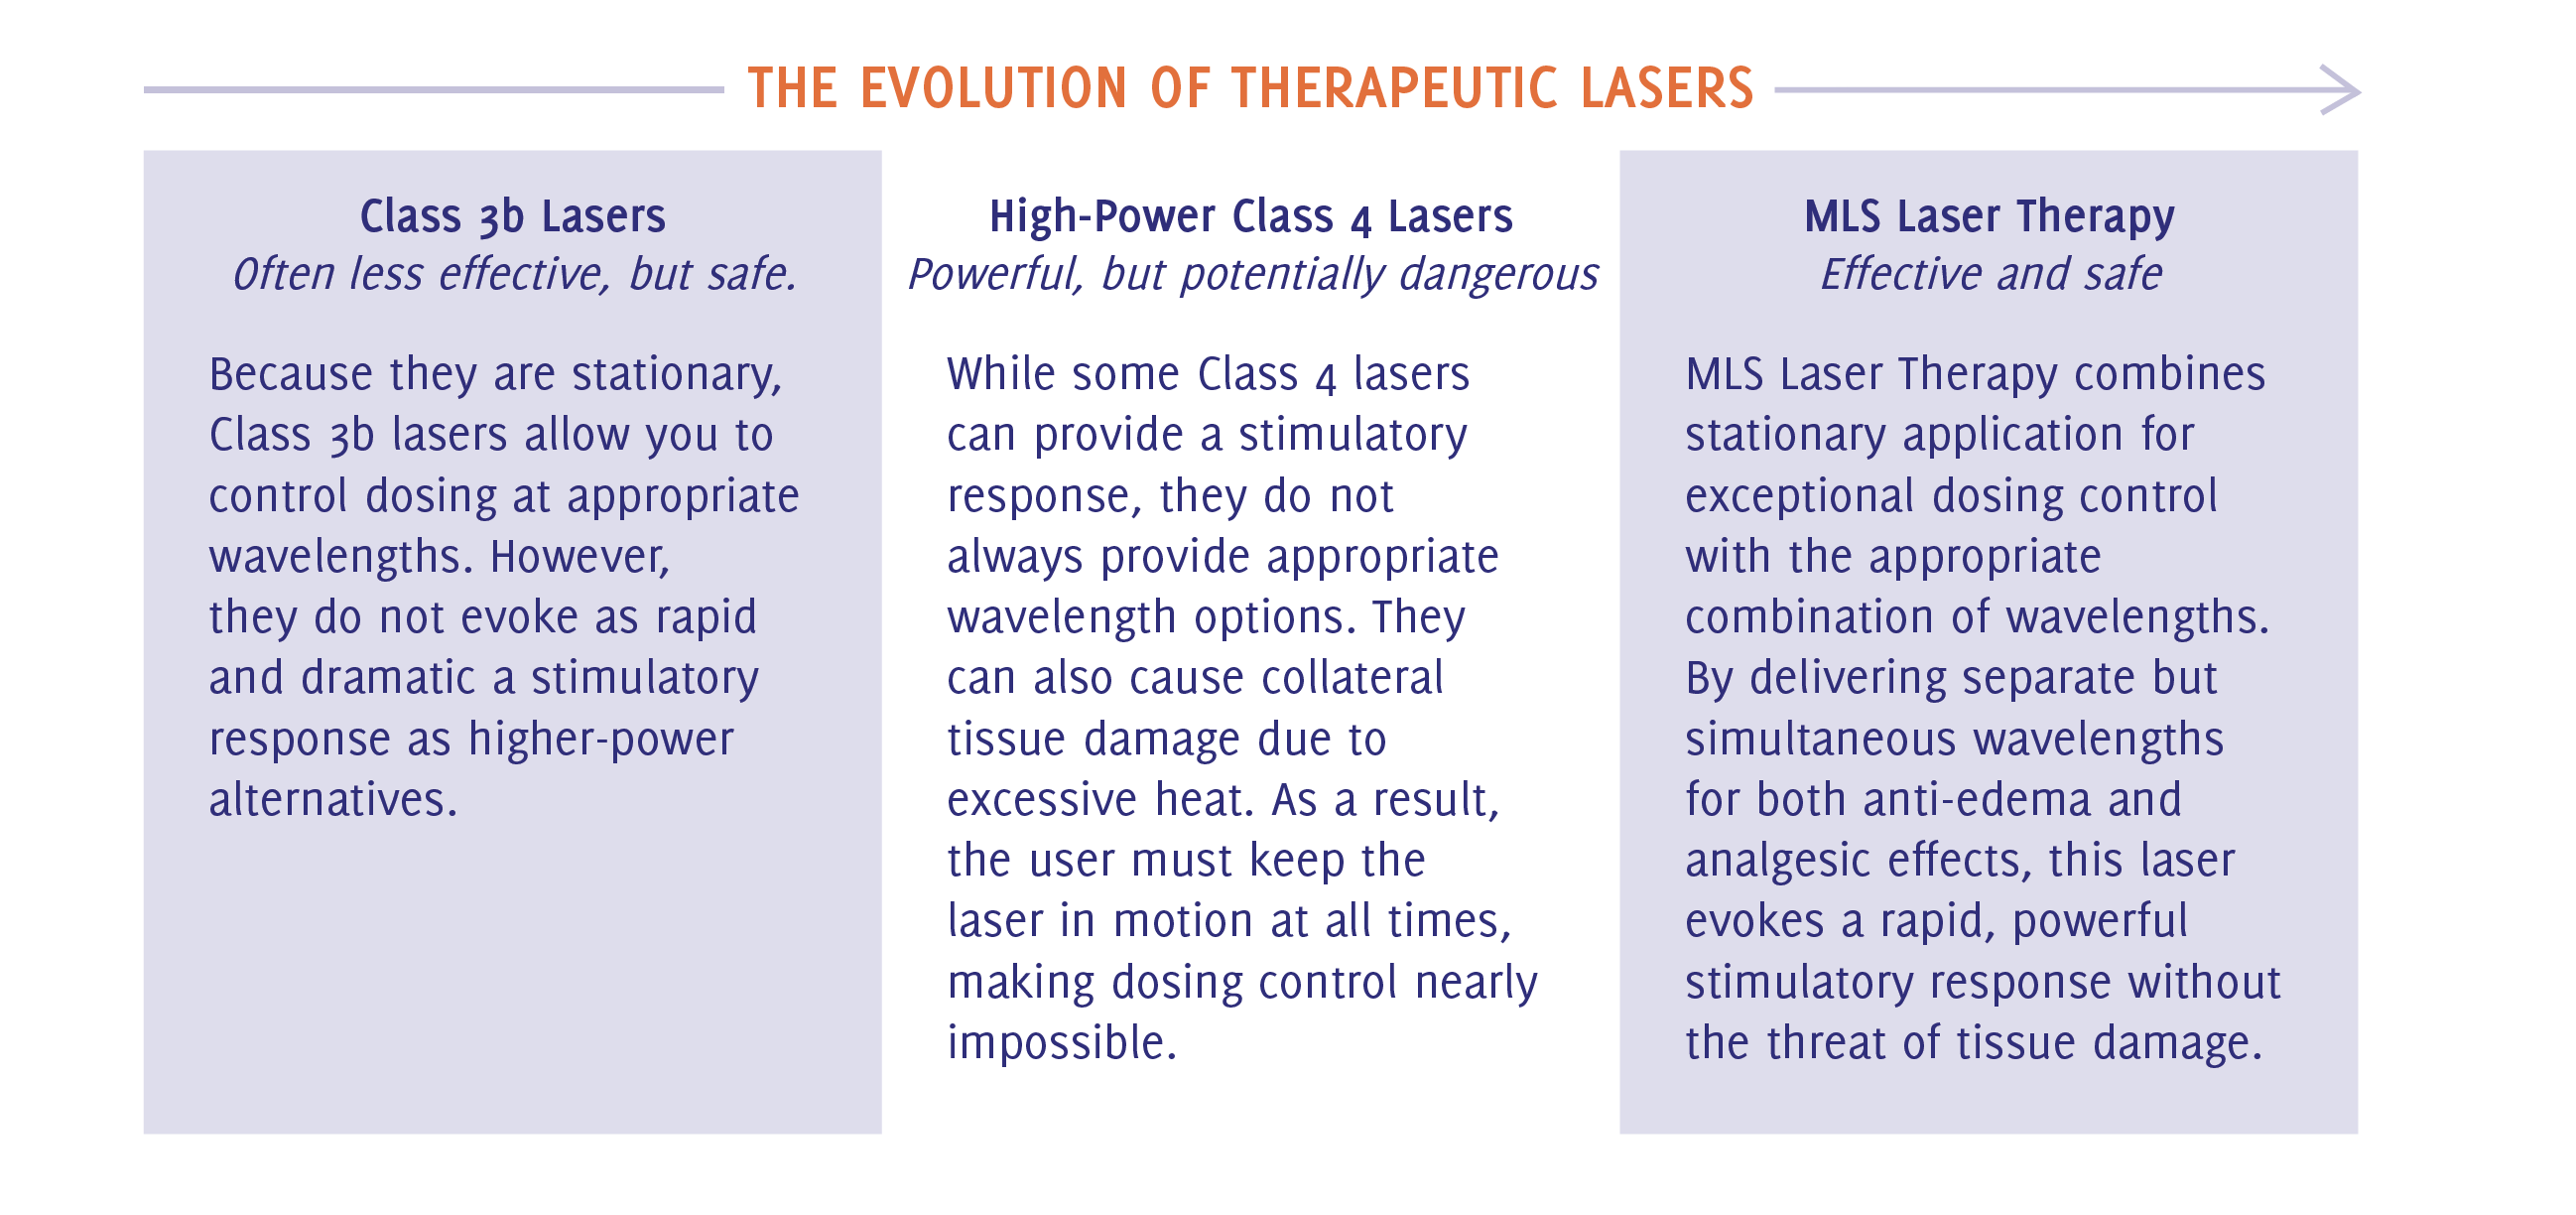 The Evolution of Therapeutic Lasers.png